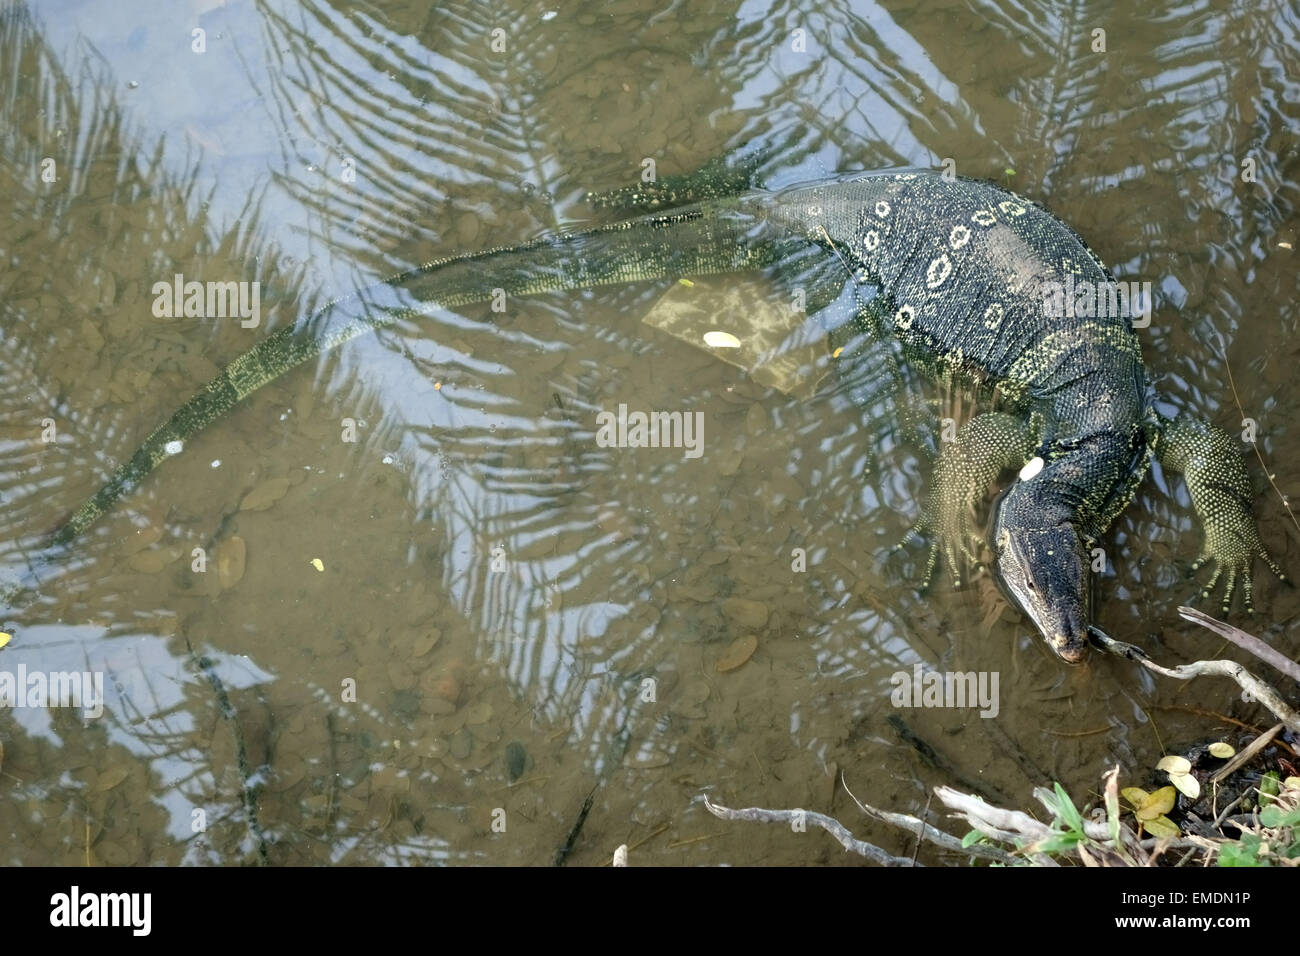 A large water monitor lizard, Varanus salvator, in water at the edge of the lake in  Lumphini Park in the centre - Stock Image